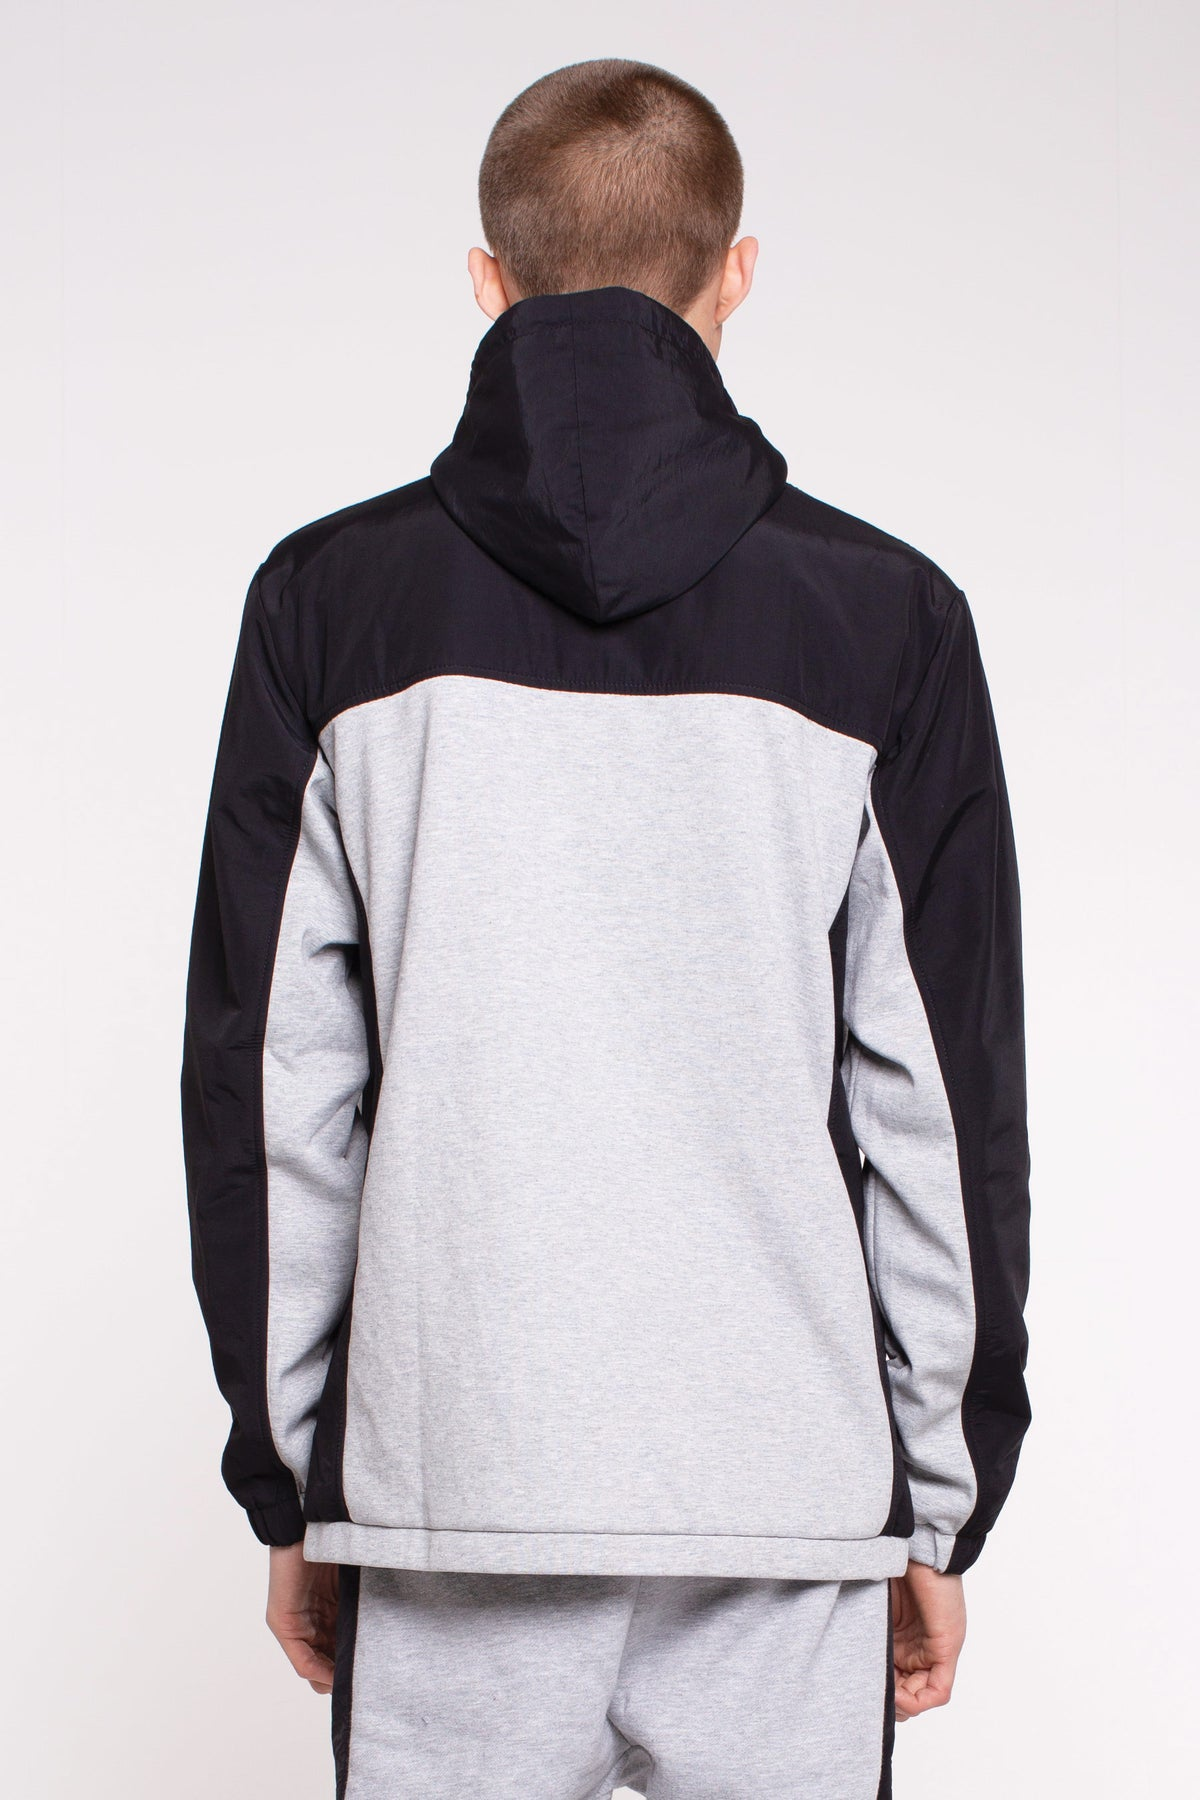 Hurdle Team Hood - Black/Grey